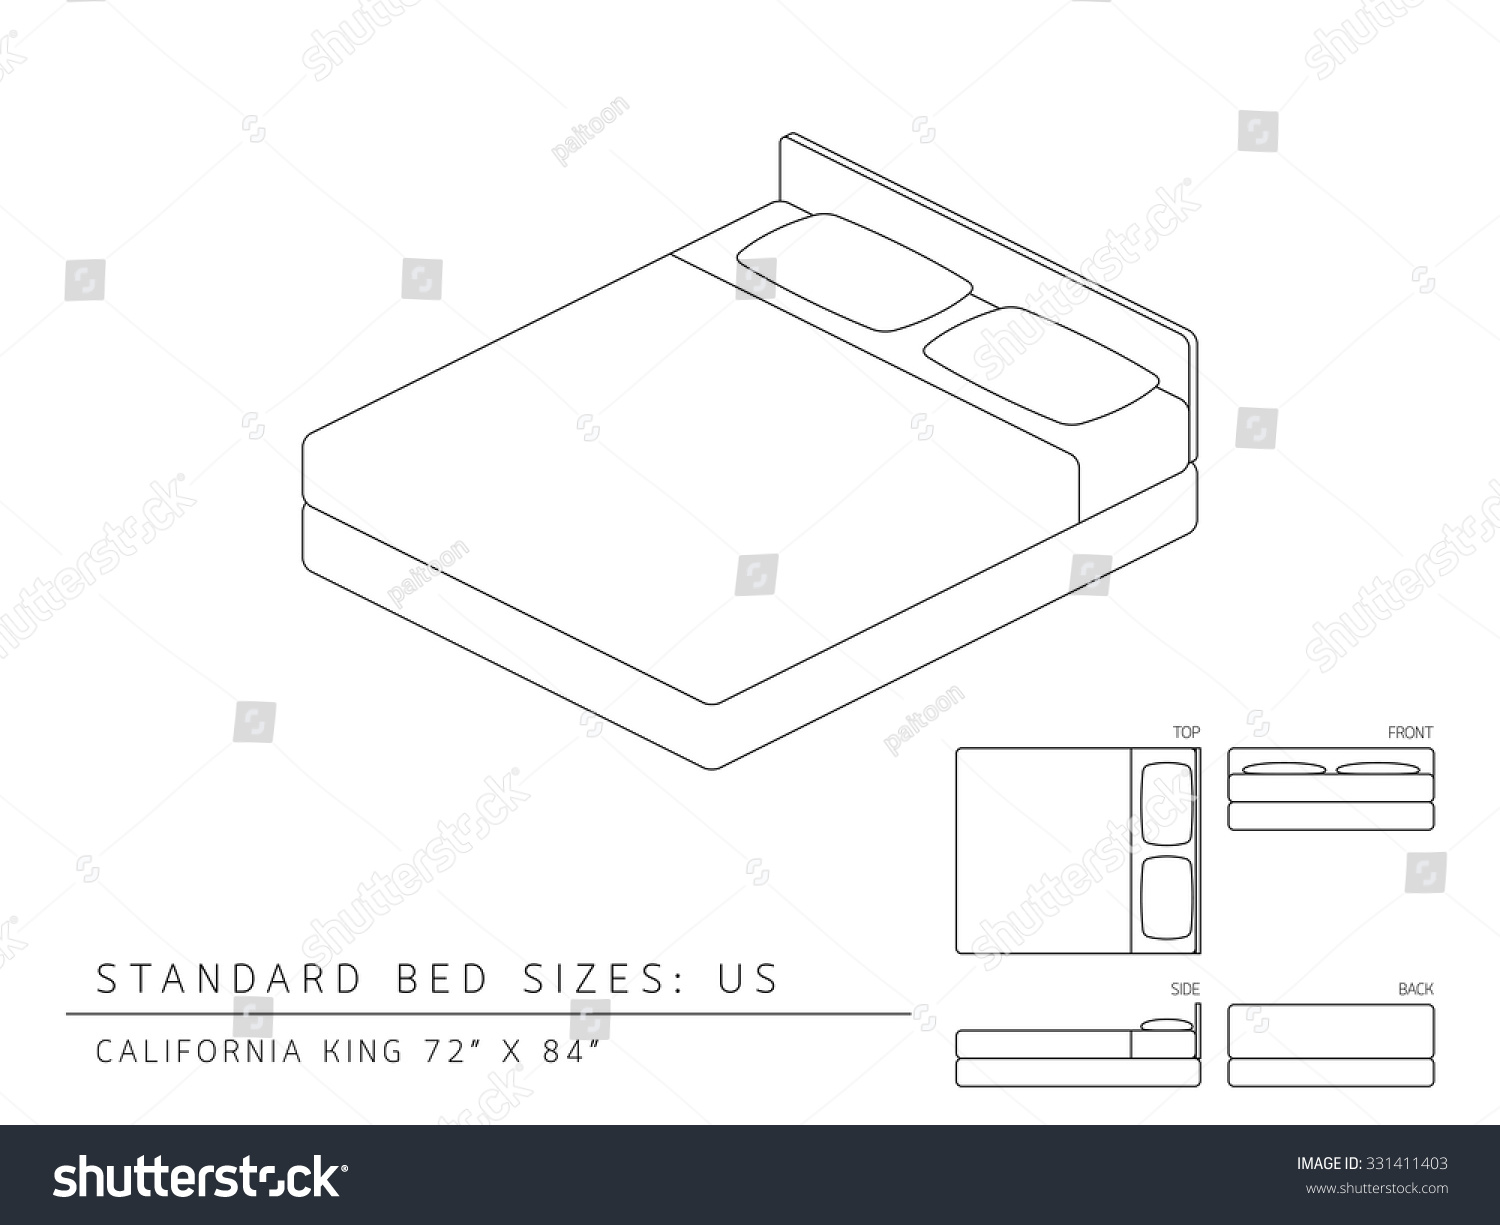 Standard Bed Sizes Of Us United States Of America